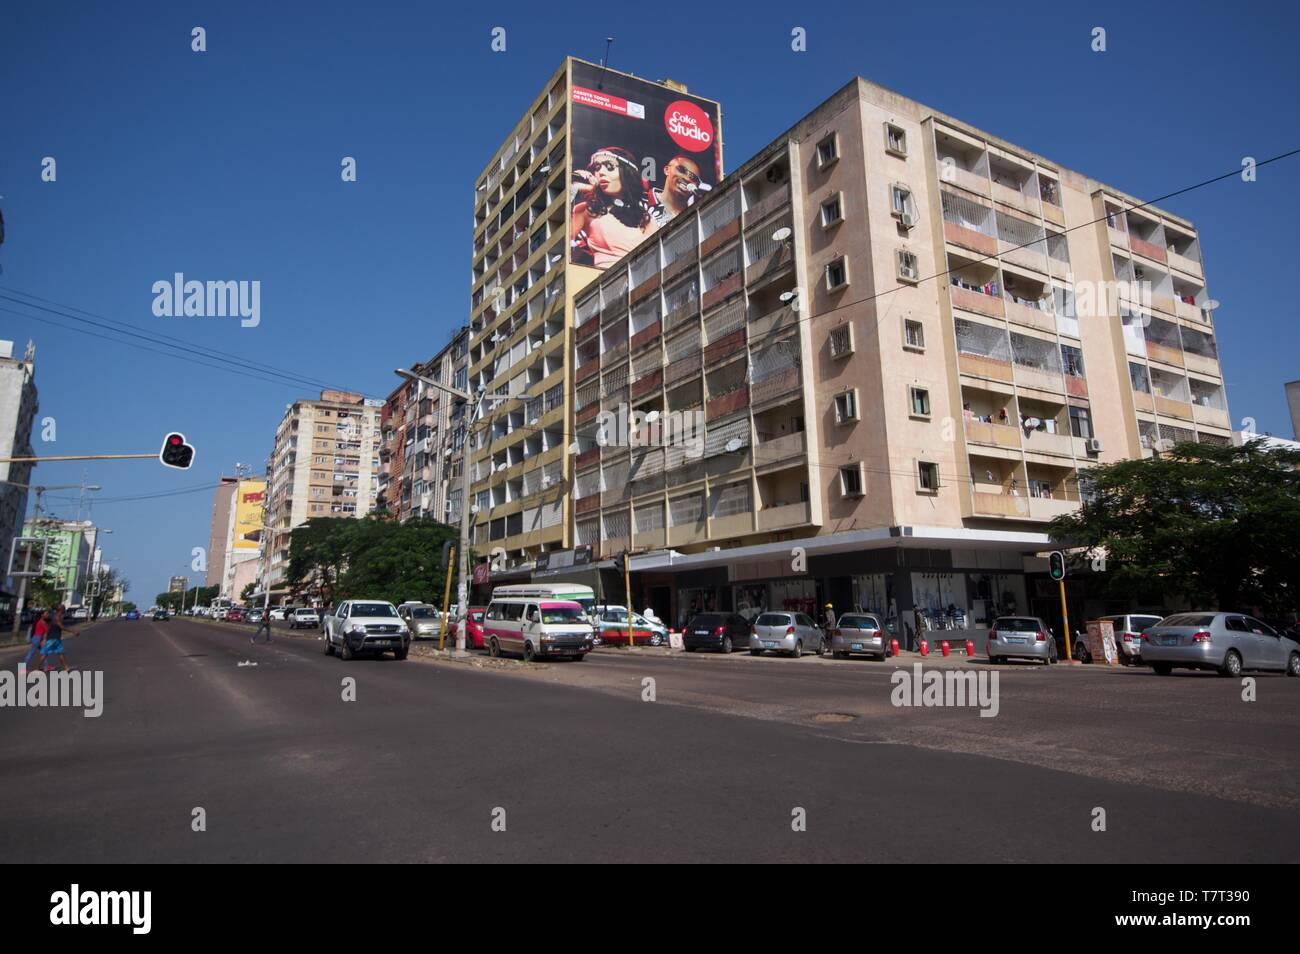 Bâtiments sur Avenida Eduardo Mondlane, Maputo, Mozambique Photo Stock